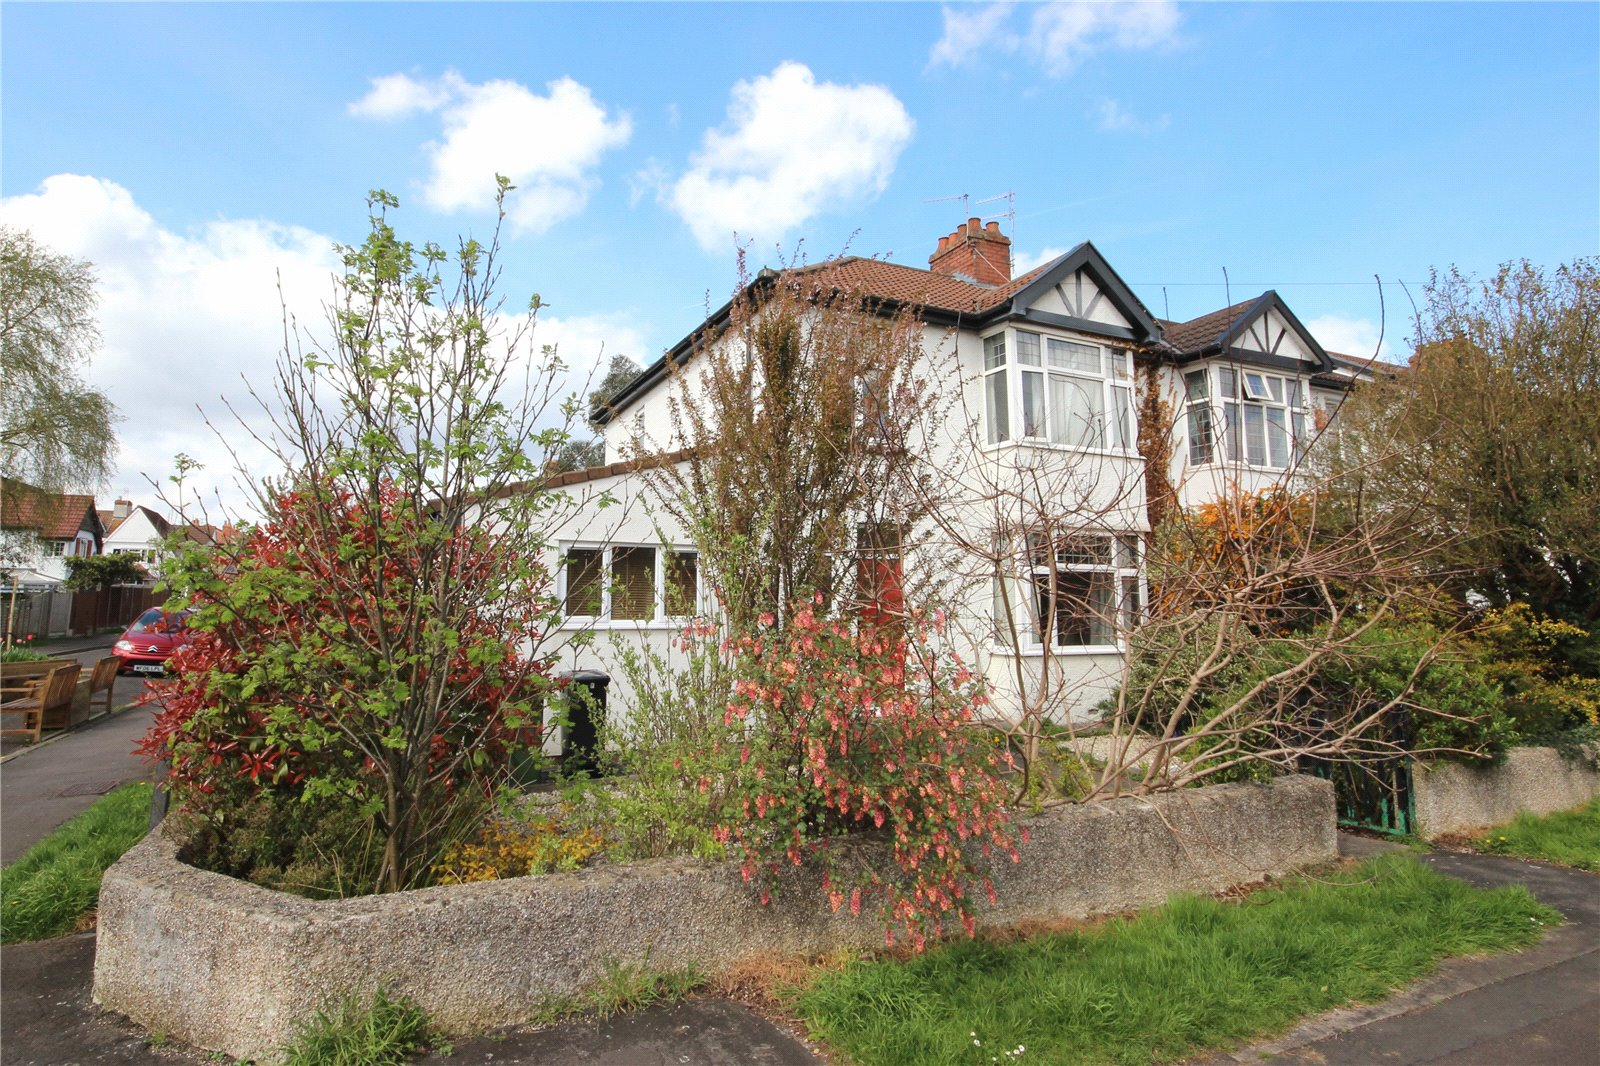 3 Bedrooms Semi Detached House for sale in Cherington Road Westbury-on-Trym Bristol BS10